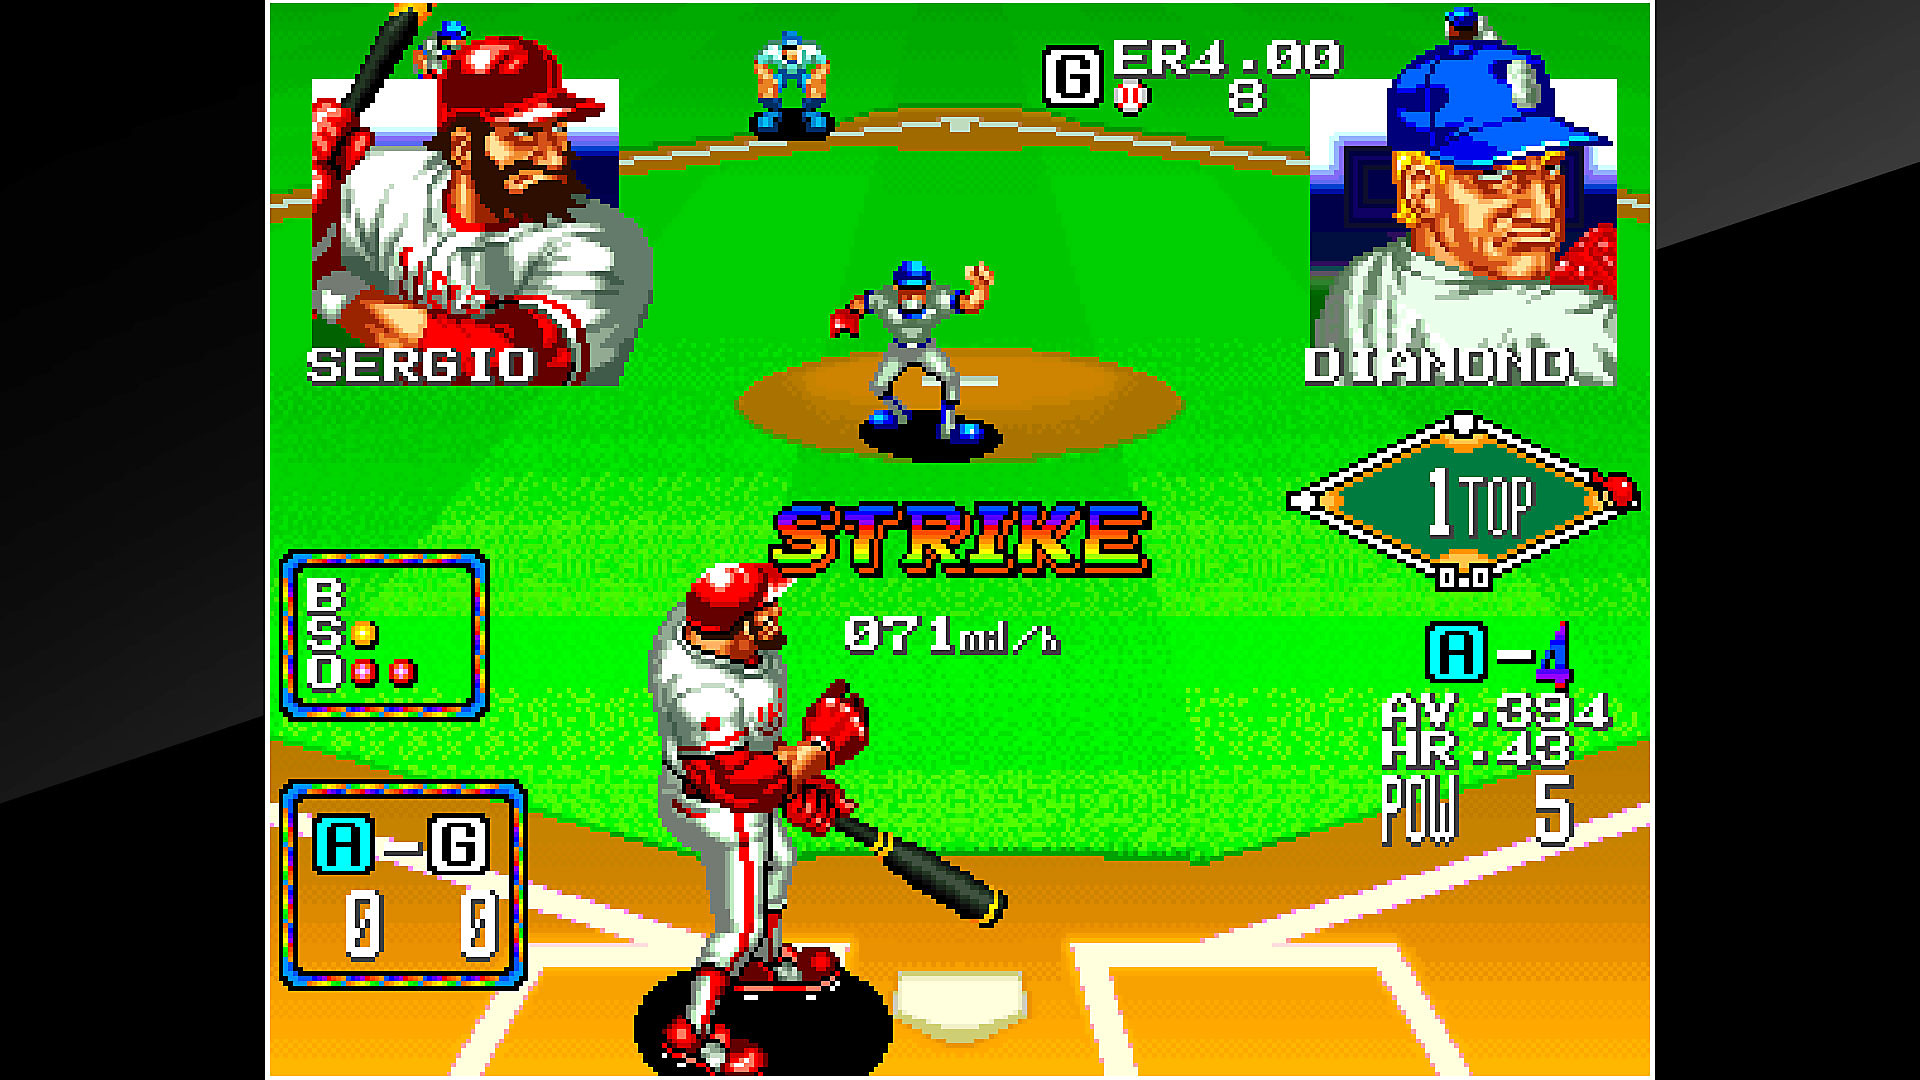 Baseball Stars 2 gameplay